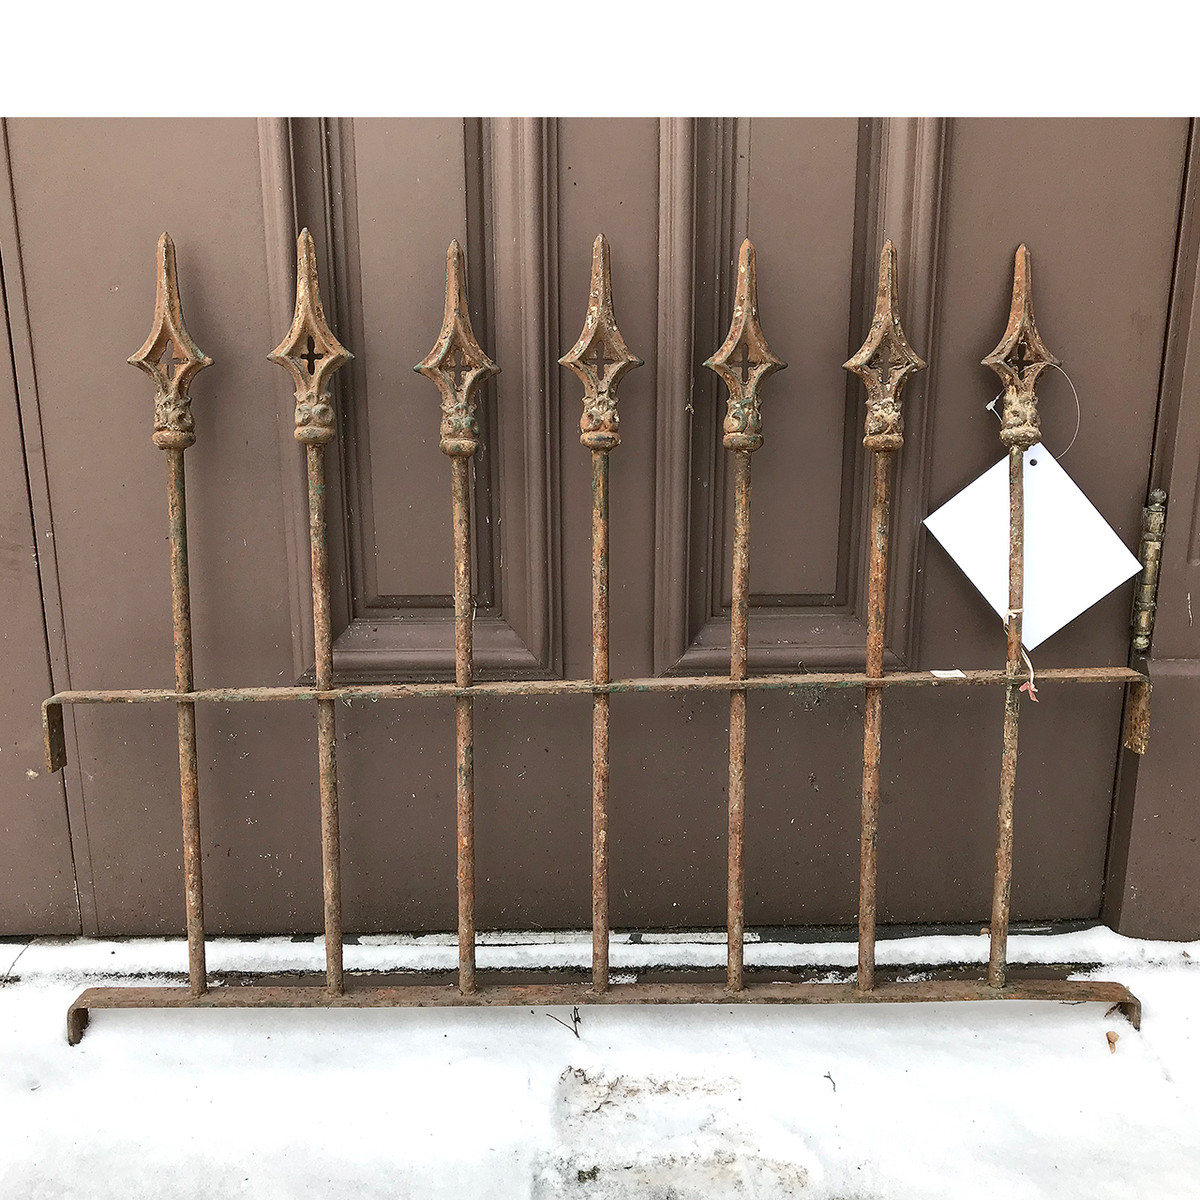 S17069 - Antique Cast Iron Window Grill